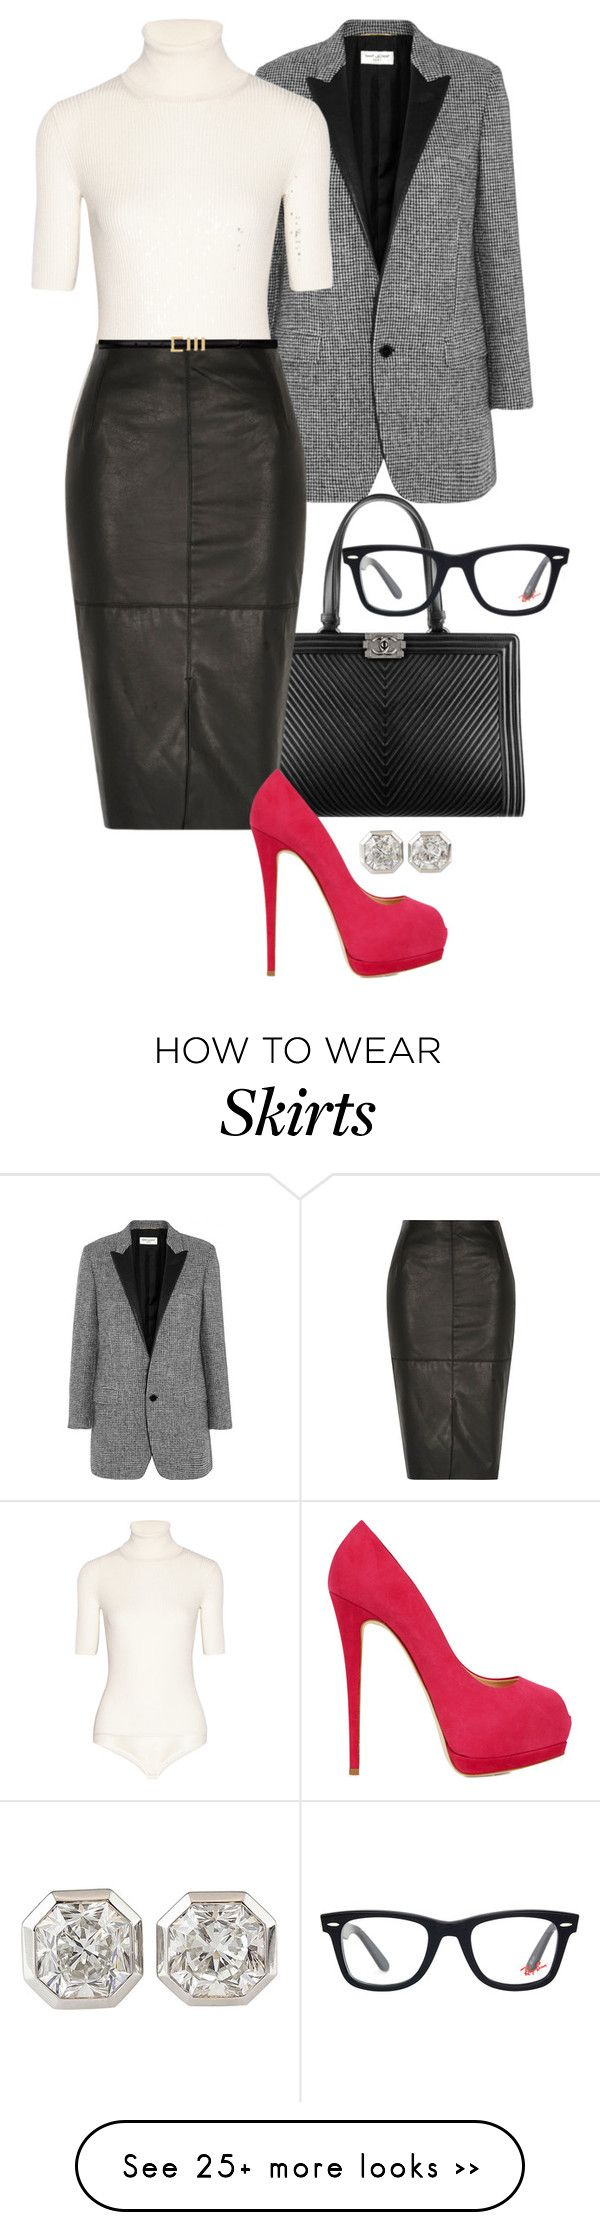 """'Leather Skirt In The Office' - Dorsianne."" by foreverforbiddenromancefashion on Polyvore featuring Yves Saint Laurent, Theory, Chanel, River Island, Giuseppe Zanotti, Tiffany & Co. and Ray-Ban"